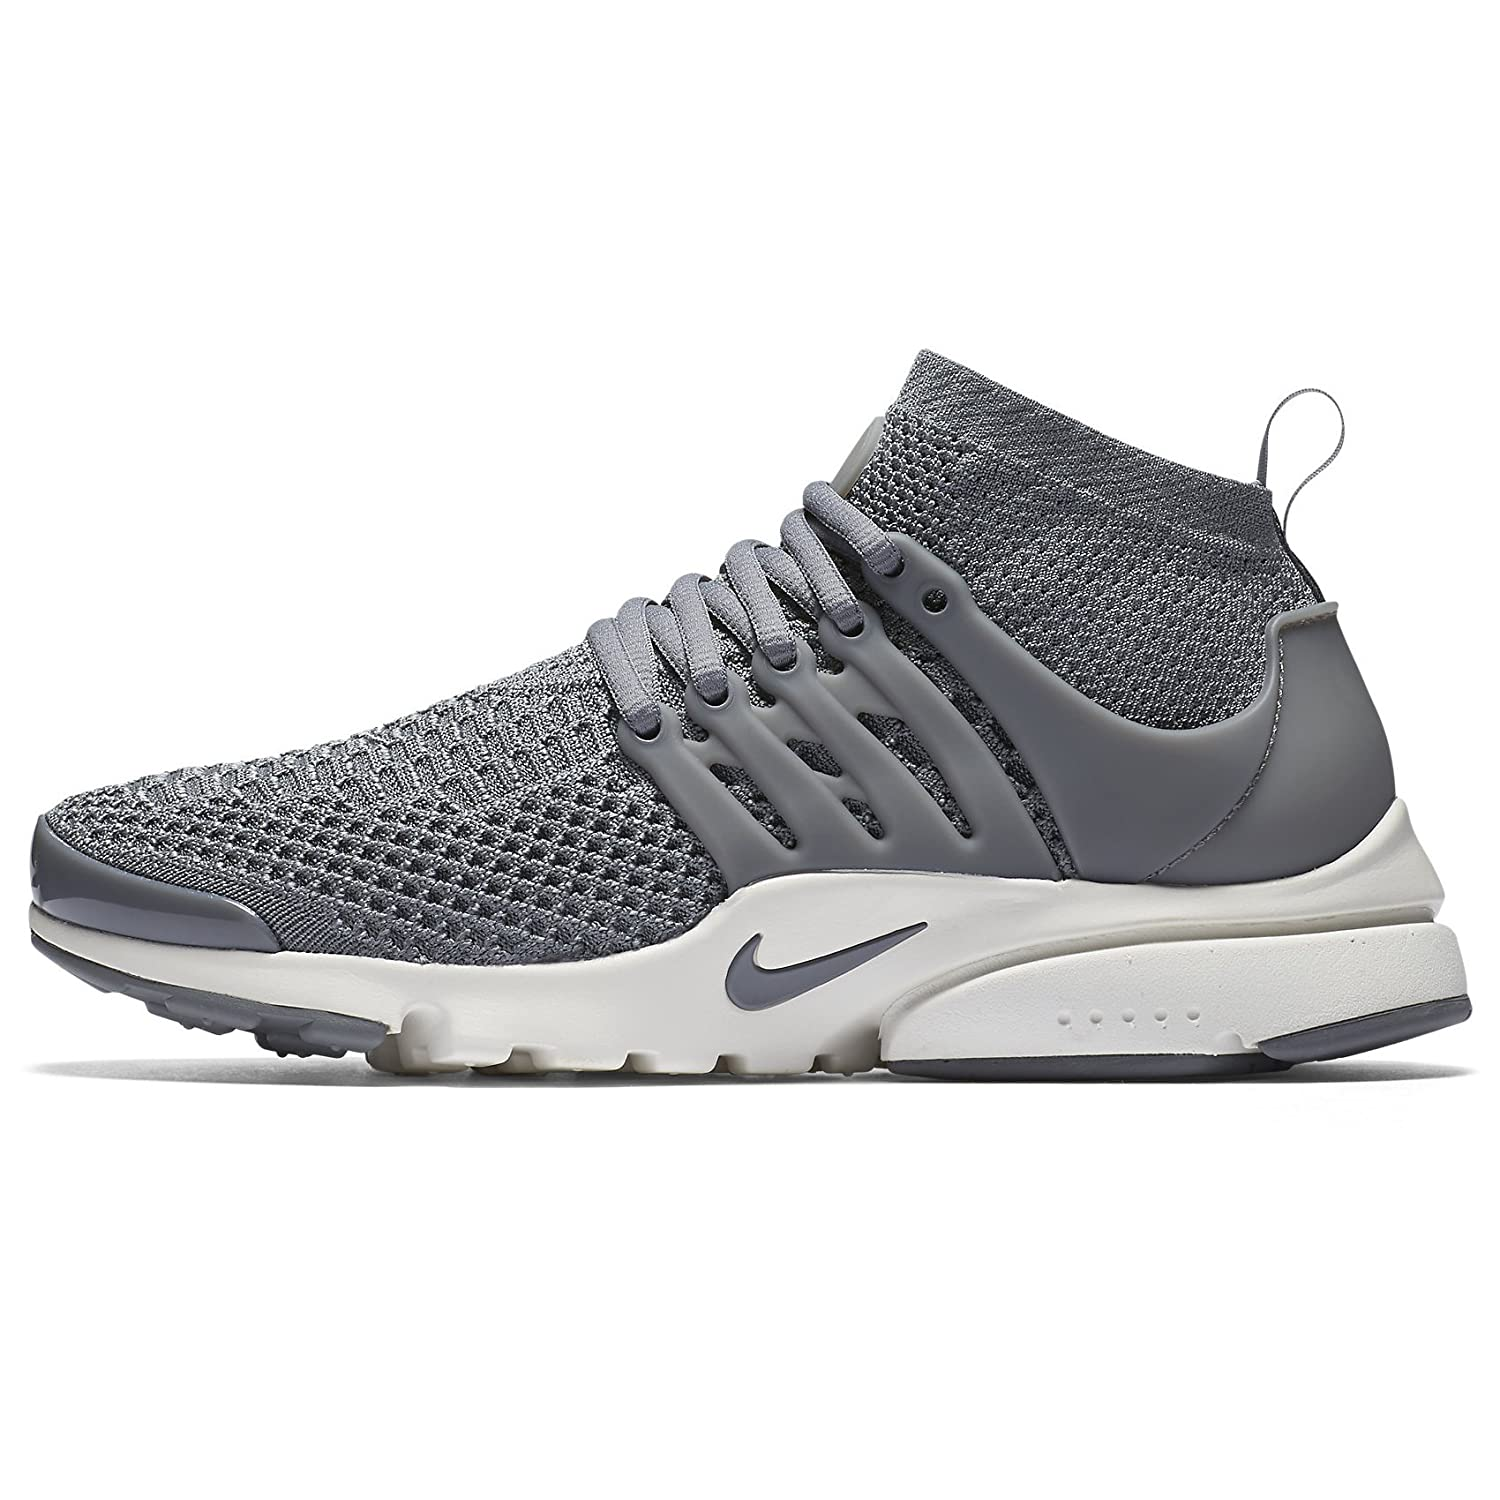 cheap for discount b53b2 92d65 Nike W Air Presto Flyknit Ultra 835738-002 Cool Grey White Women s Running  Shoes (Size 7.5)  Buy Online at Low Prices in India - Amazon.in